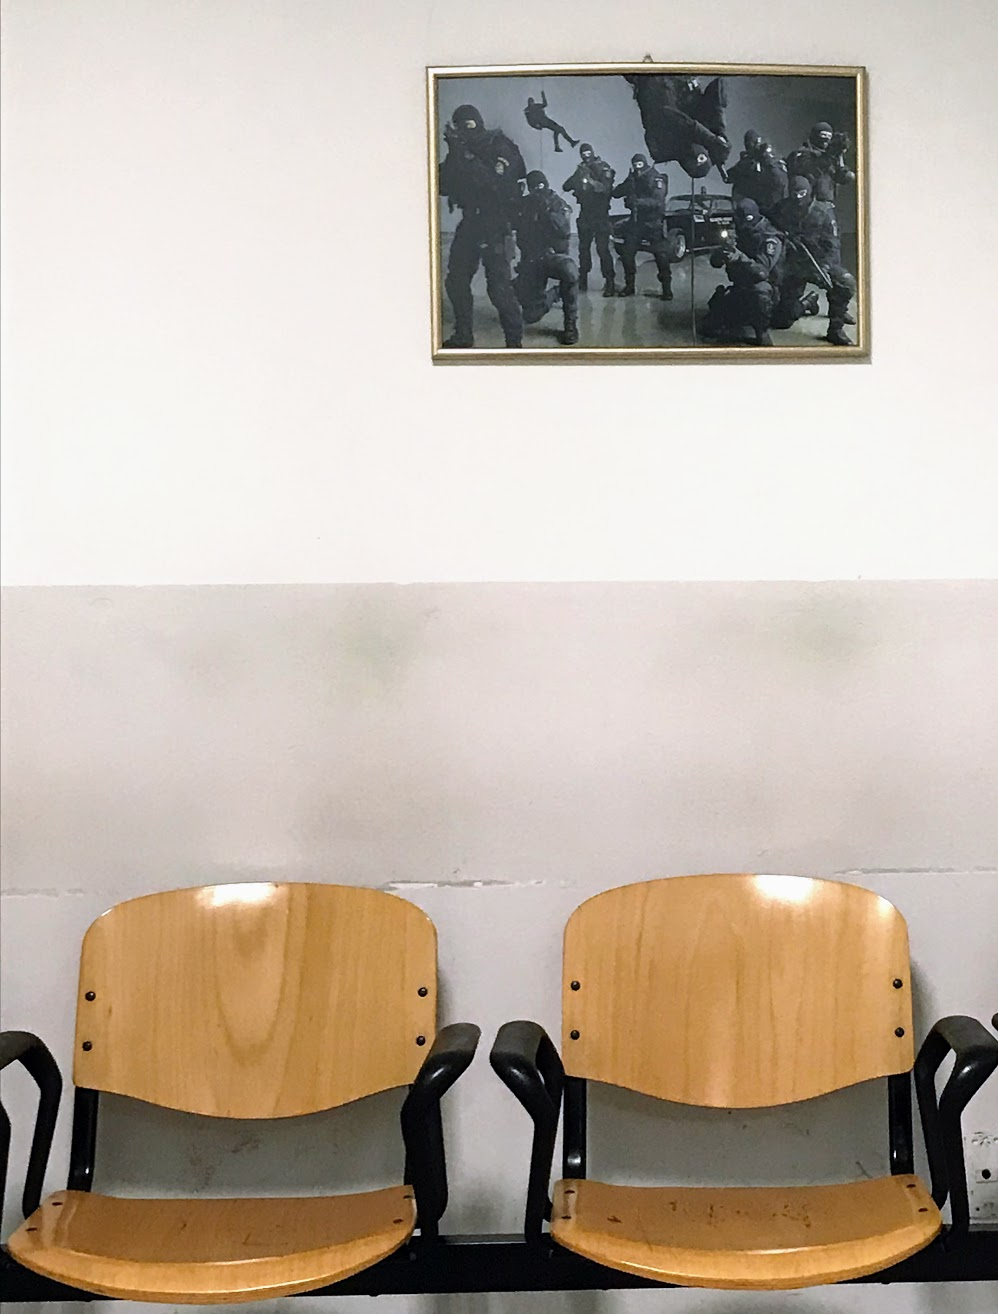 Framed photo in waiting room of Milan questura office